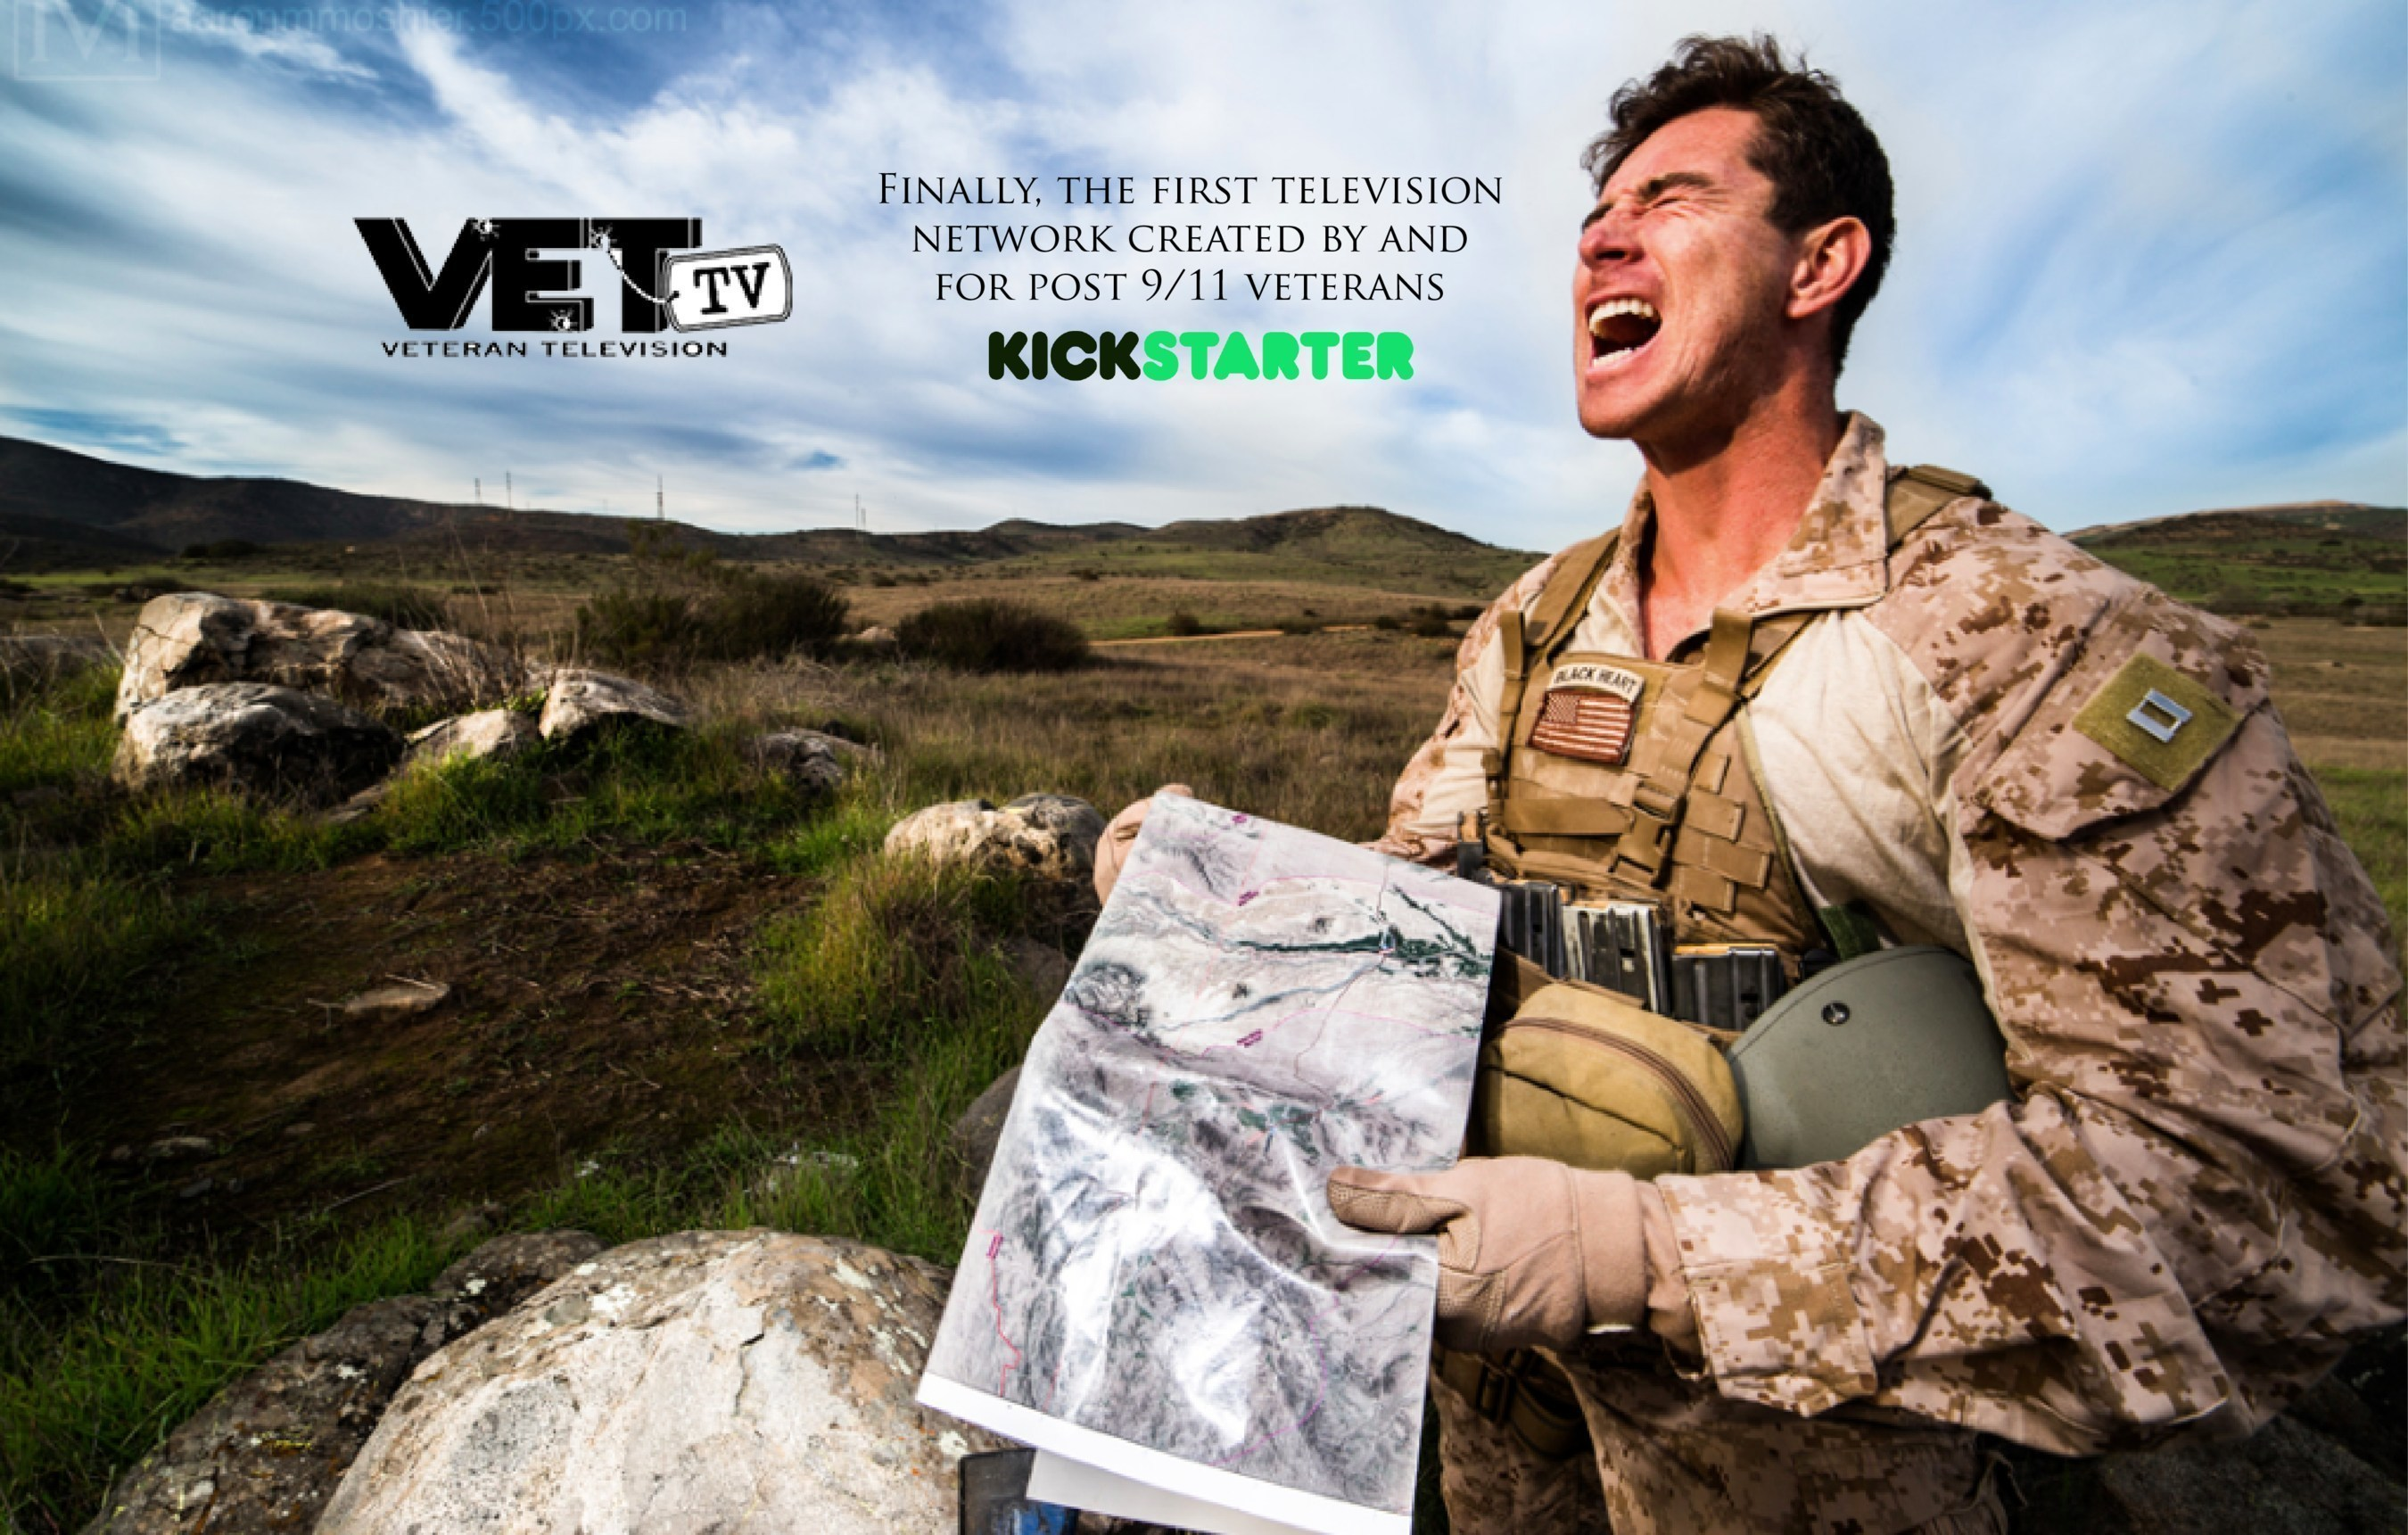 Comedy Central + Military Channel + Hulu = A streaming TV network with all original content made by veterans for veterans.